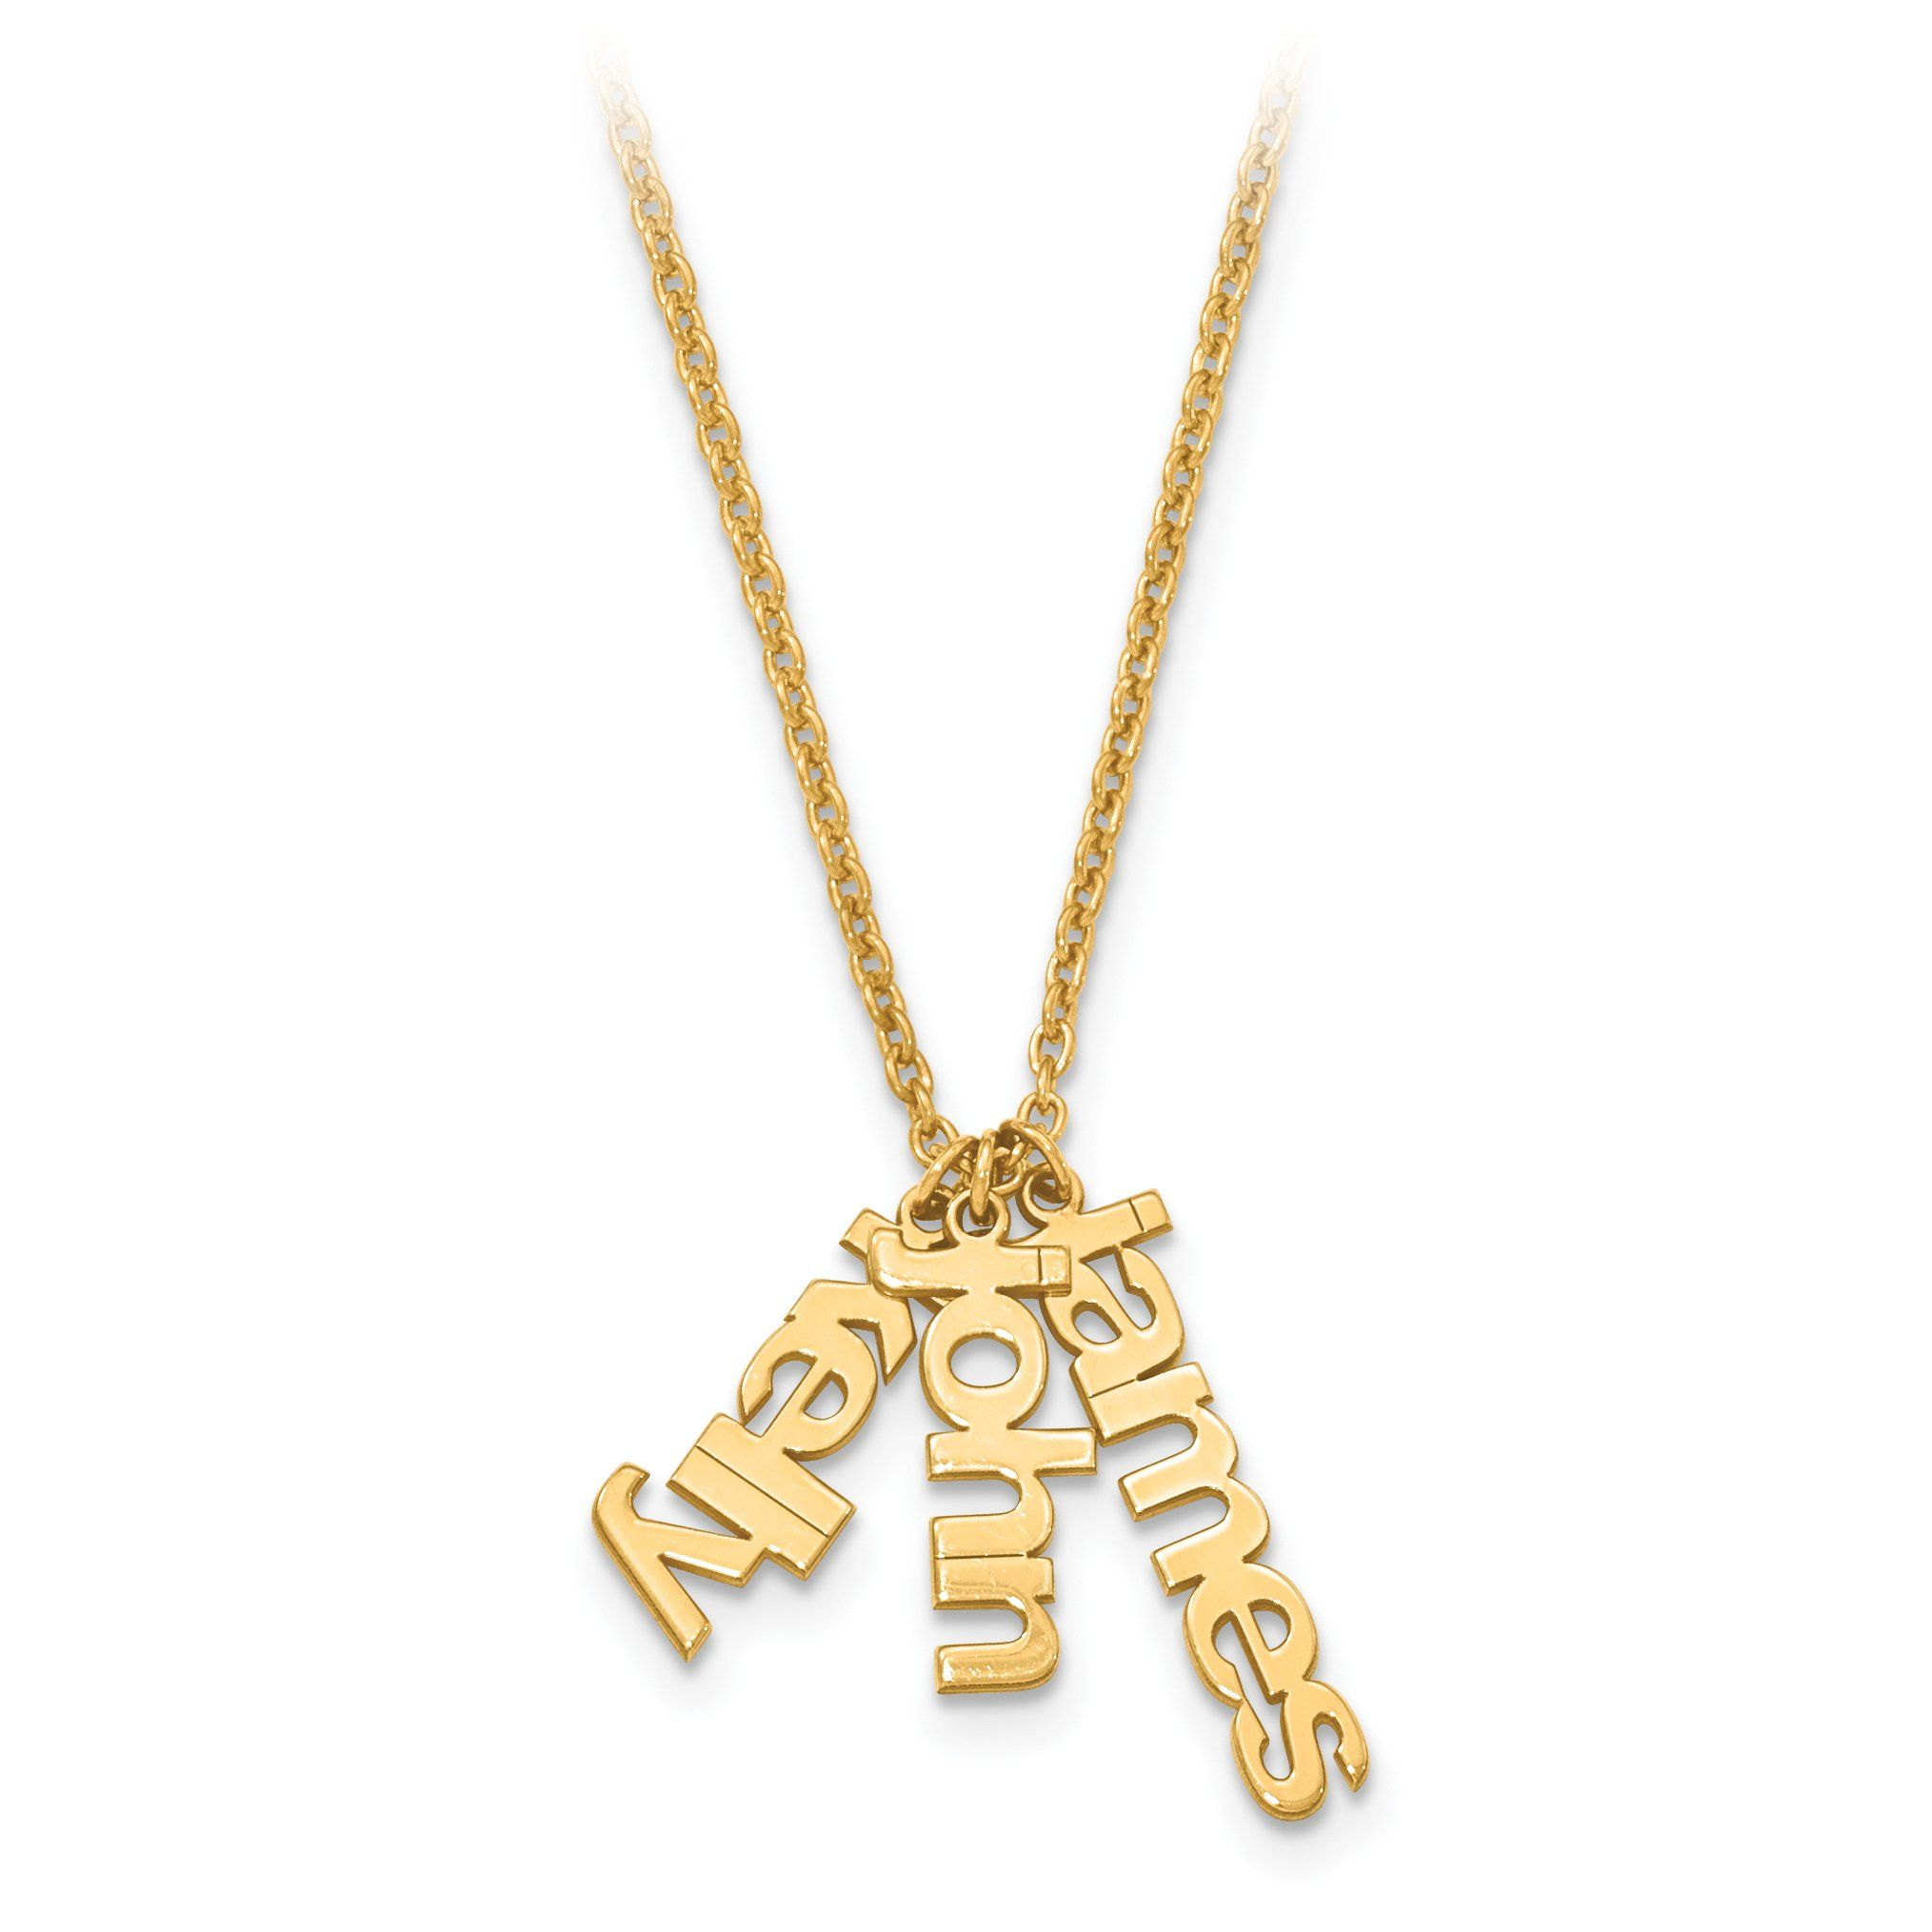 Personalized Satin Finish Multiple Name Charm Pendant Necklace Dainty Gold Necklace Gold Bar Necklace 14k Gold Necklace